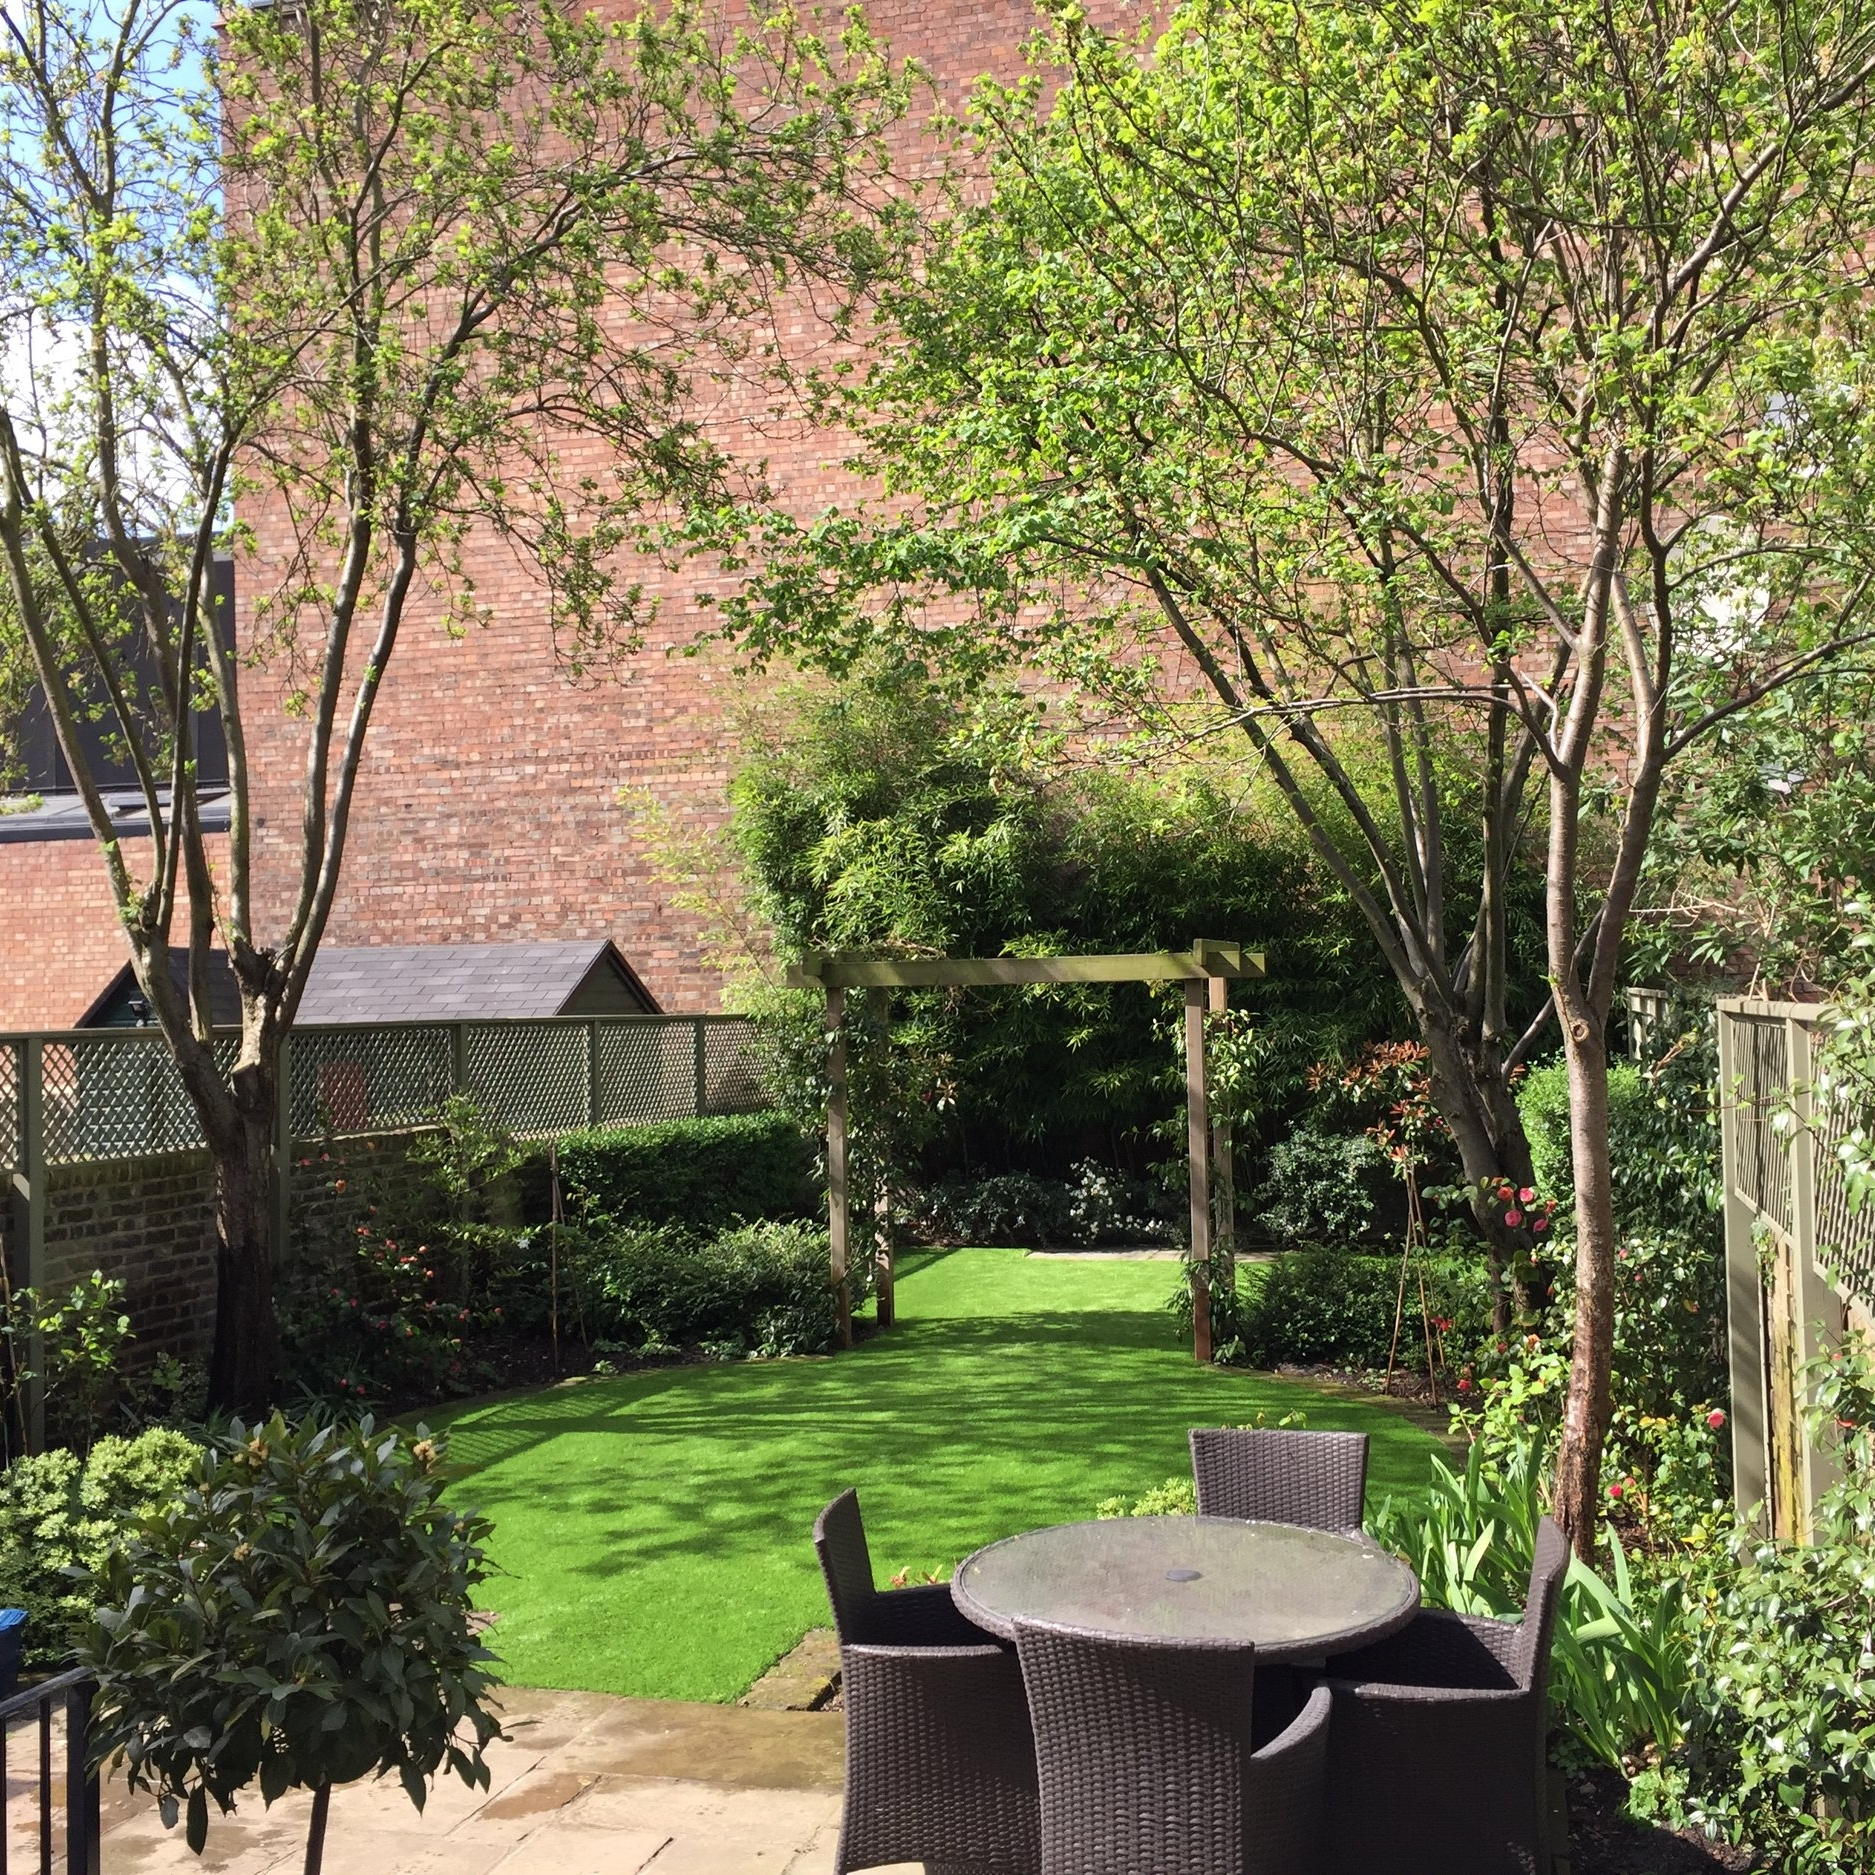 De Beauvoir Square - This garden is part of our regular maintenance package for the Benyon Estate. As one of their higher-end properties, we carry out weekly maintenance to the highest standards. In this beautiful, shaded, woodland themed garden, no details are overlooked.